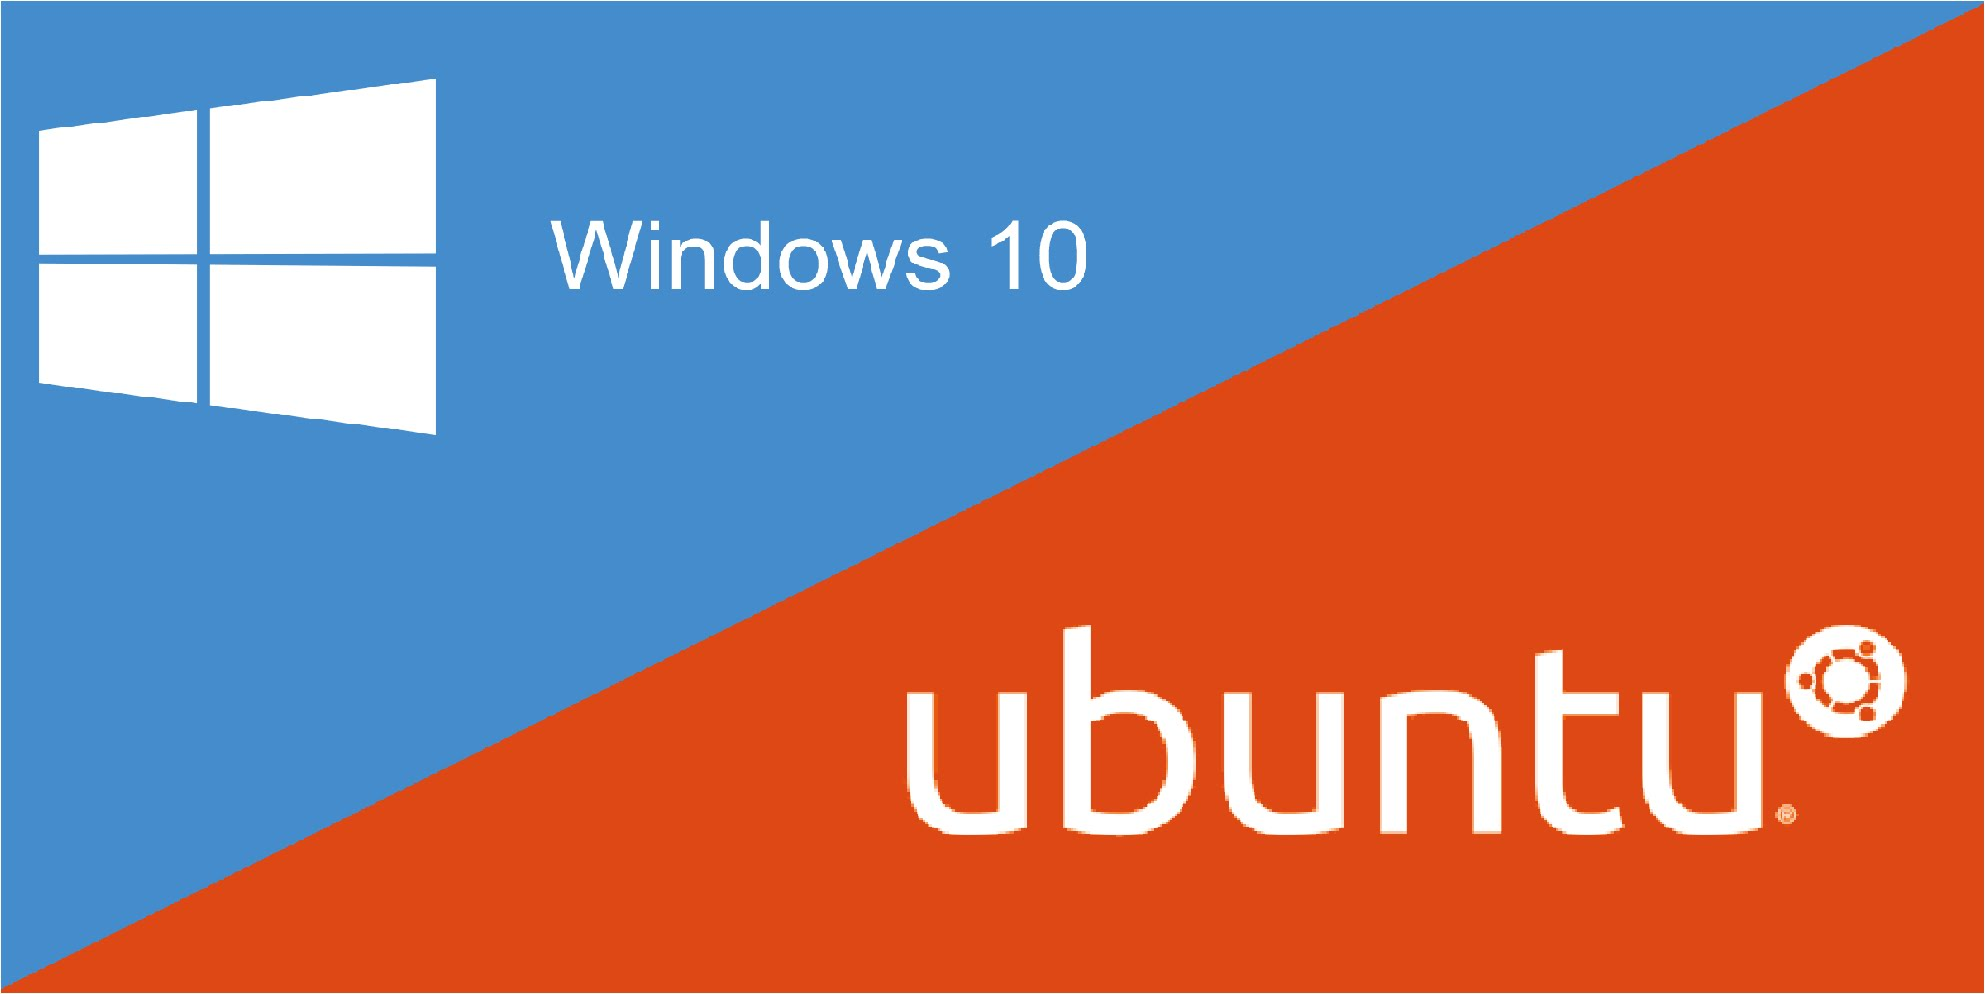 Build 2016: annunciato Ubuntu su Windows 10